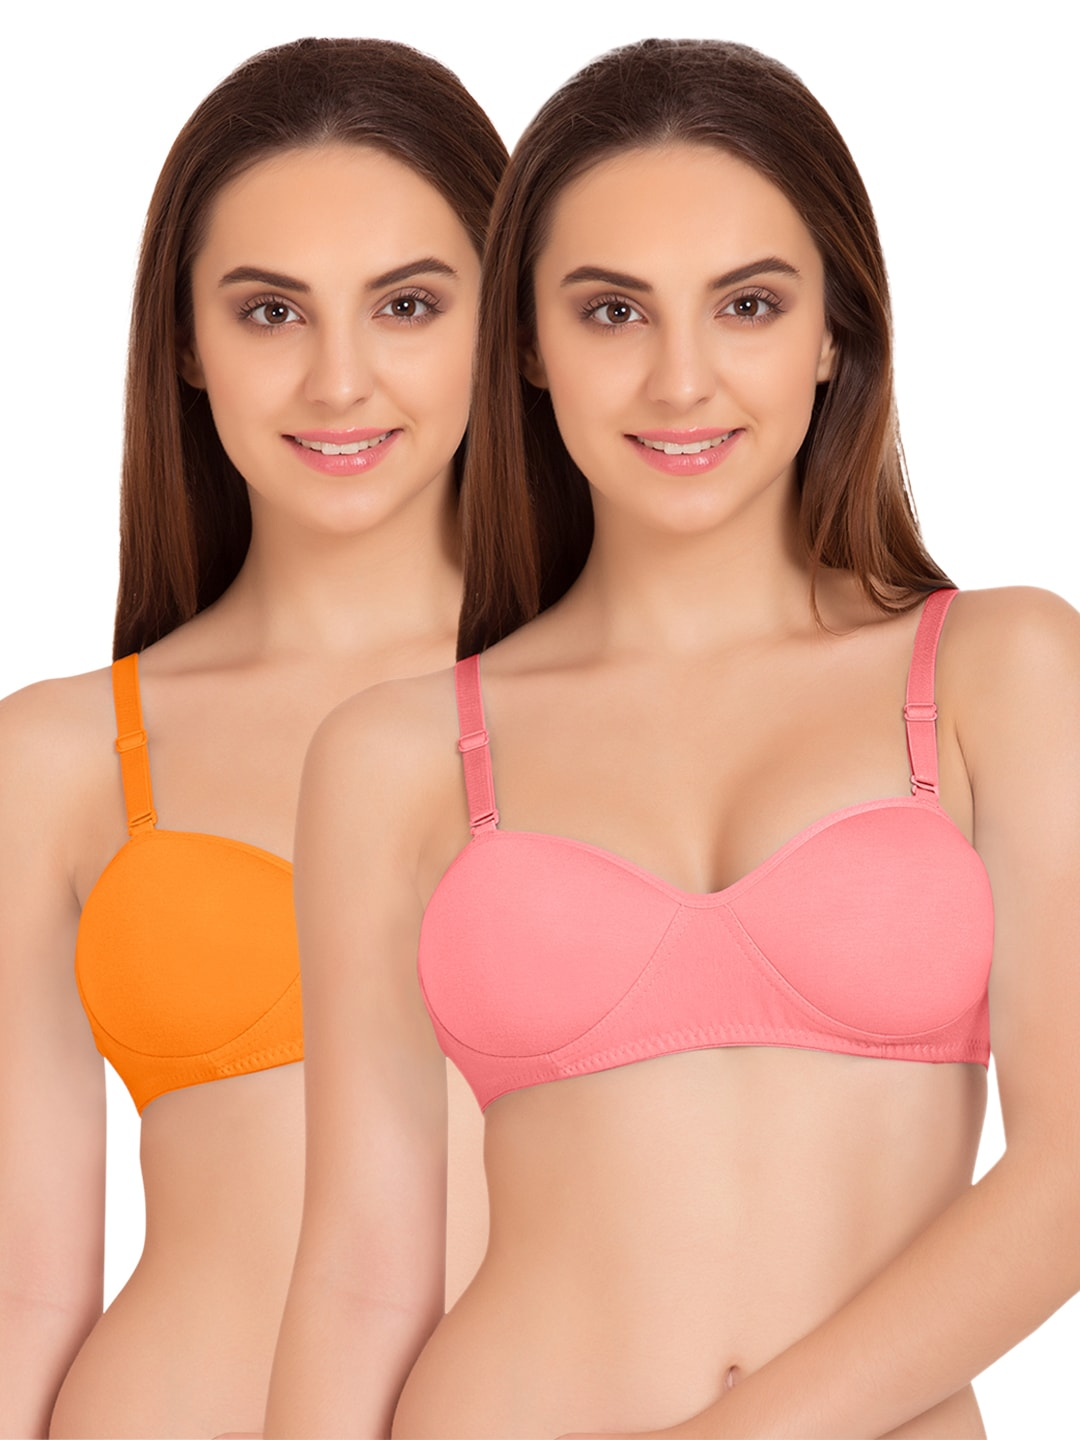 Tweens Pack of 2 Padded T-shirt Bras TW91201ORG-2PC-CRL image